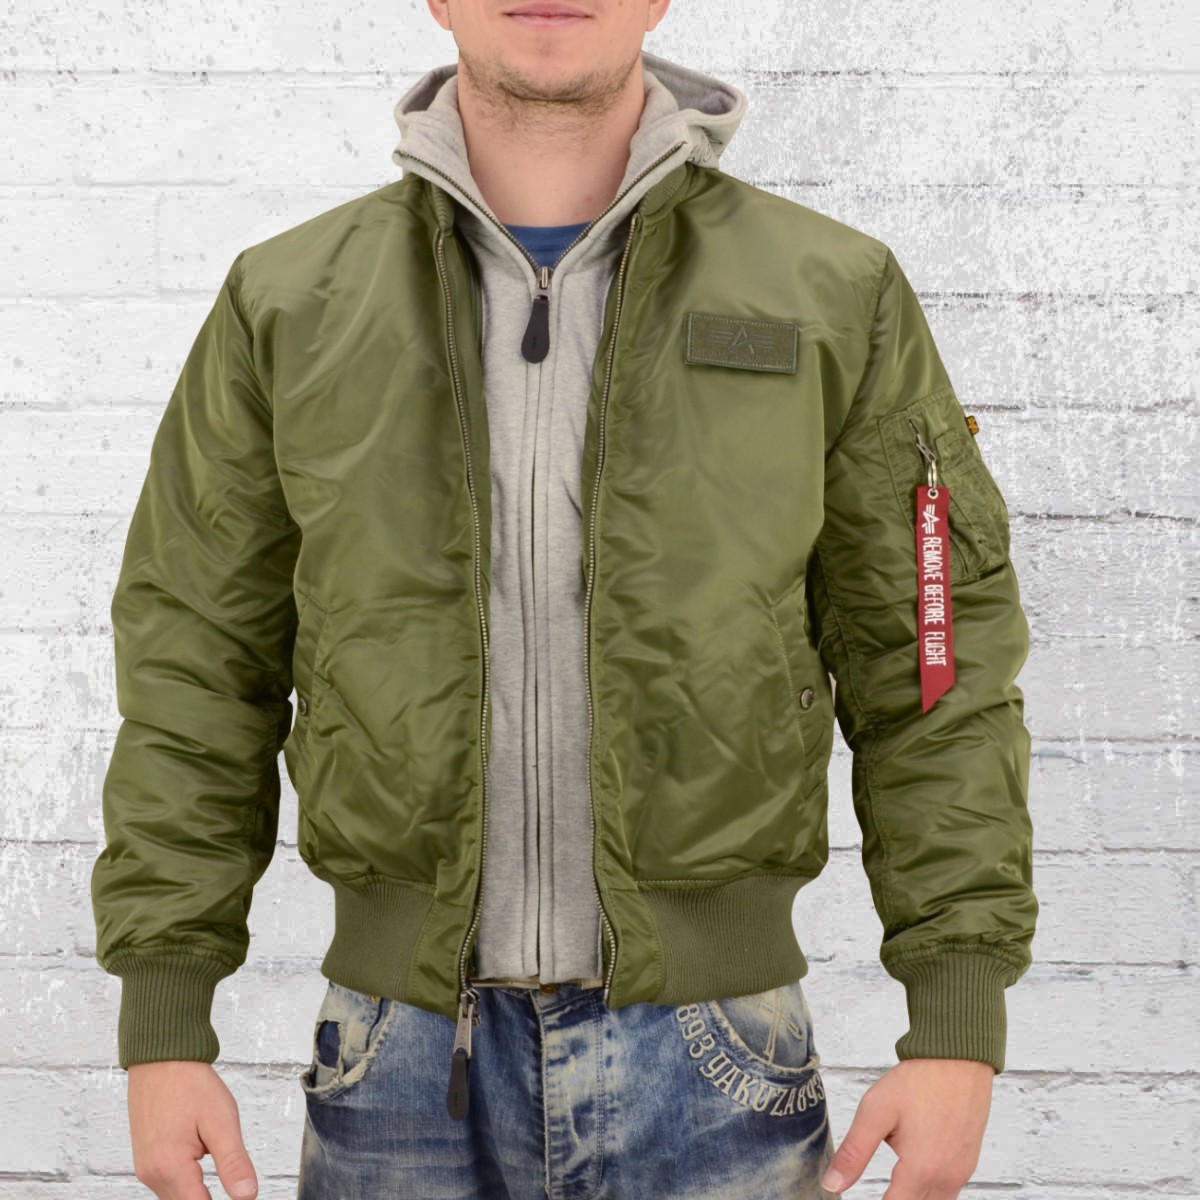 D Tec Order Now Alpha Industries Mens Bomber Jacket Ma1 D Tec Sage Green